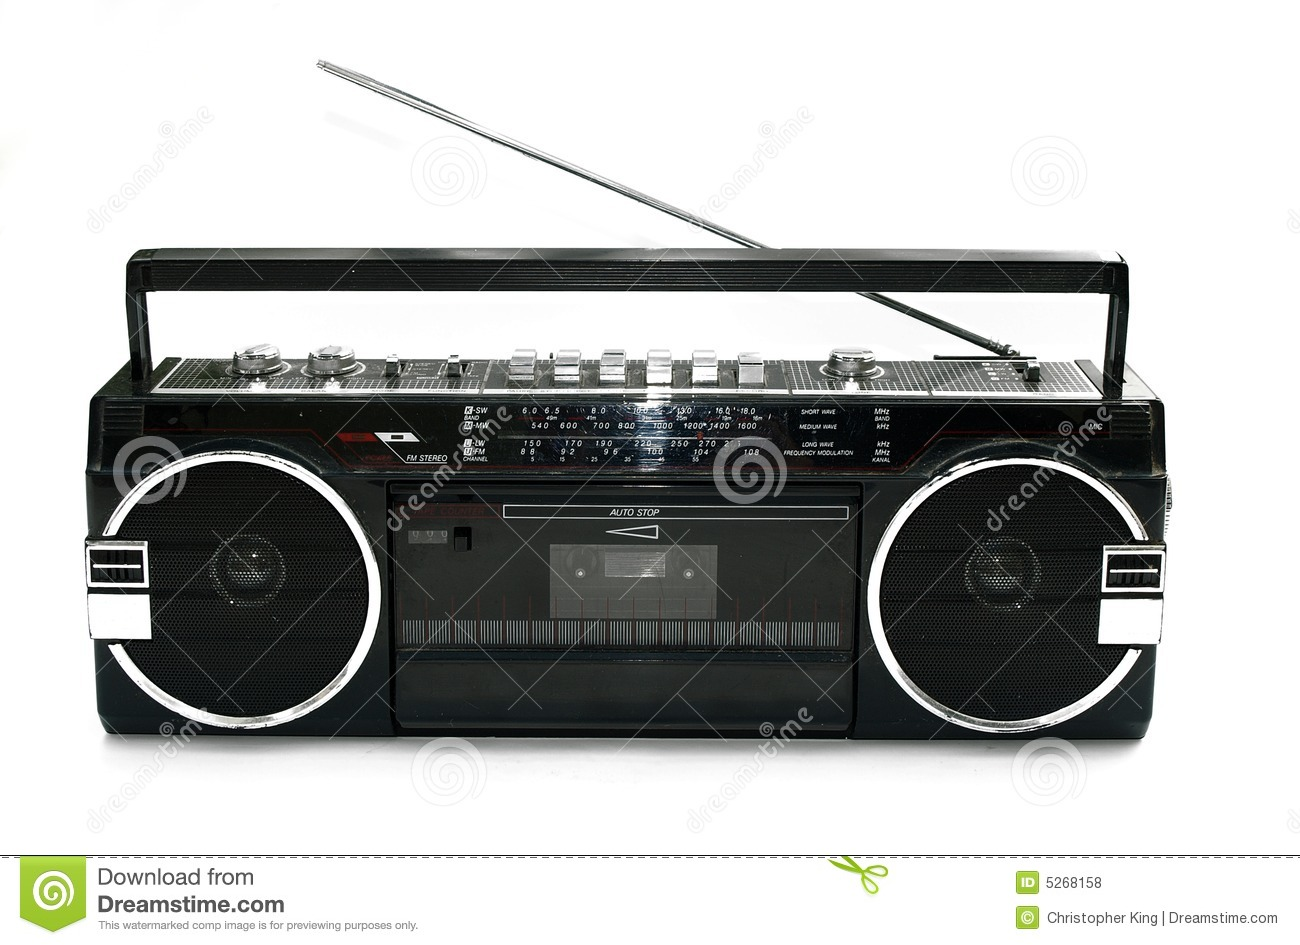 Dirty old 1980s style cassette player